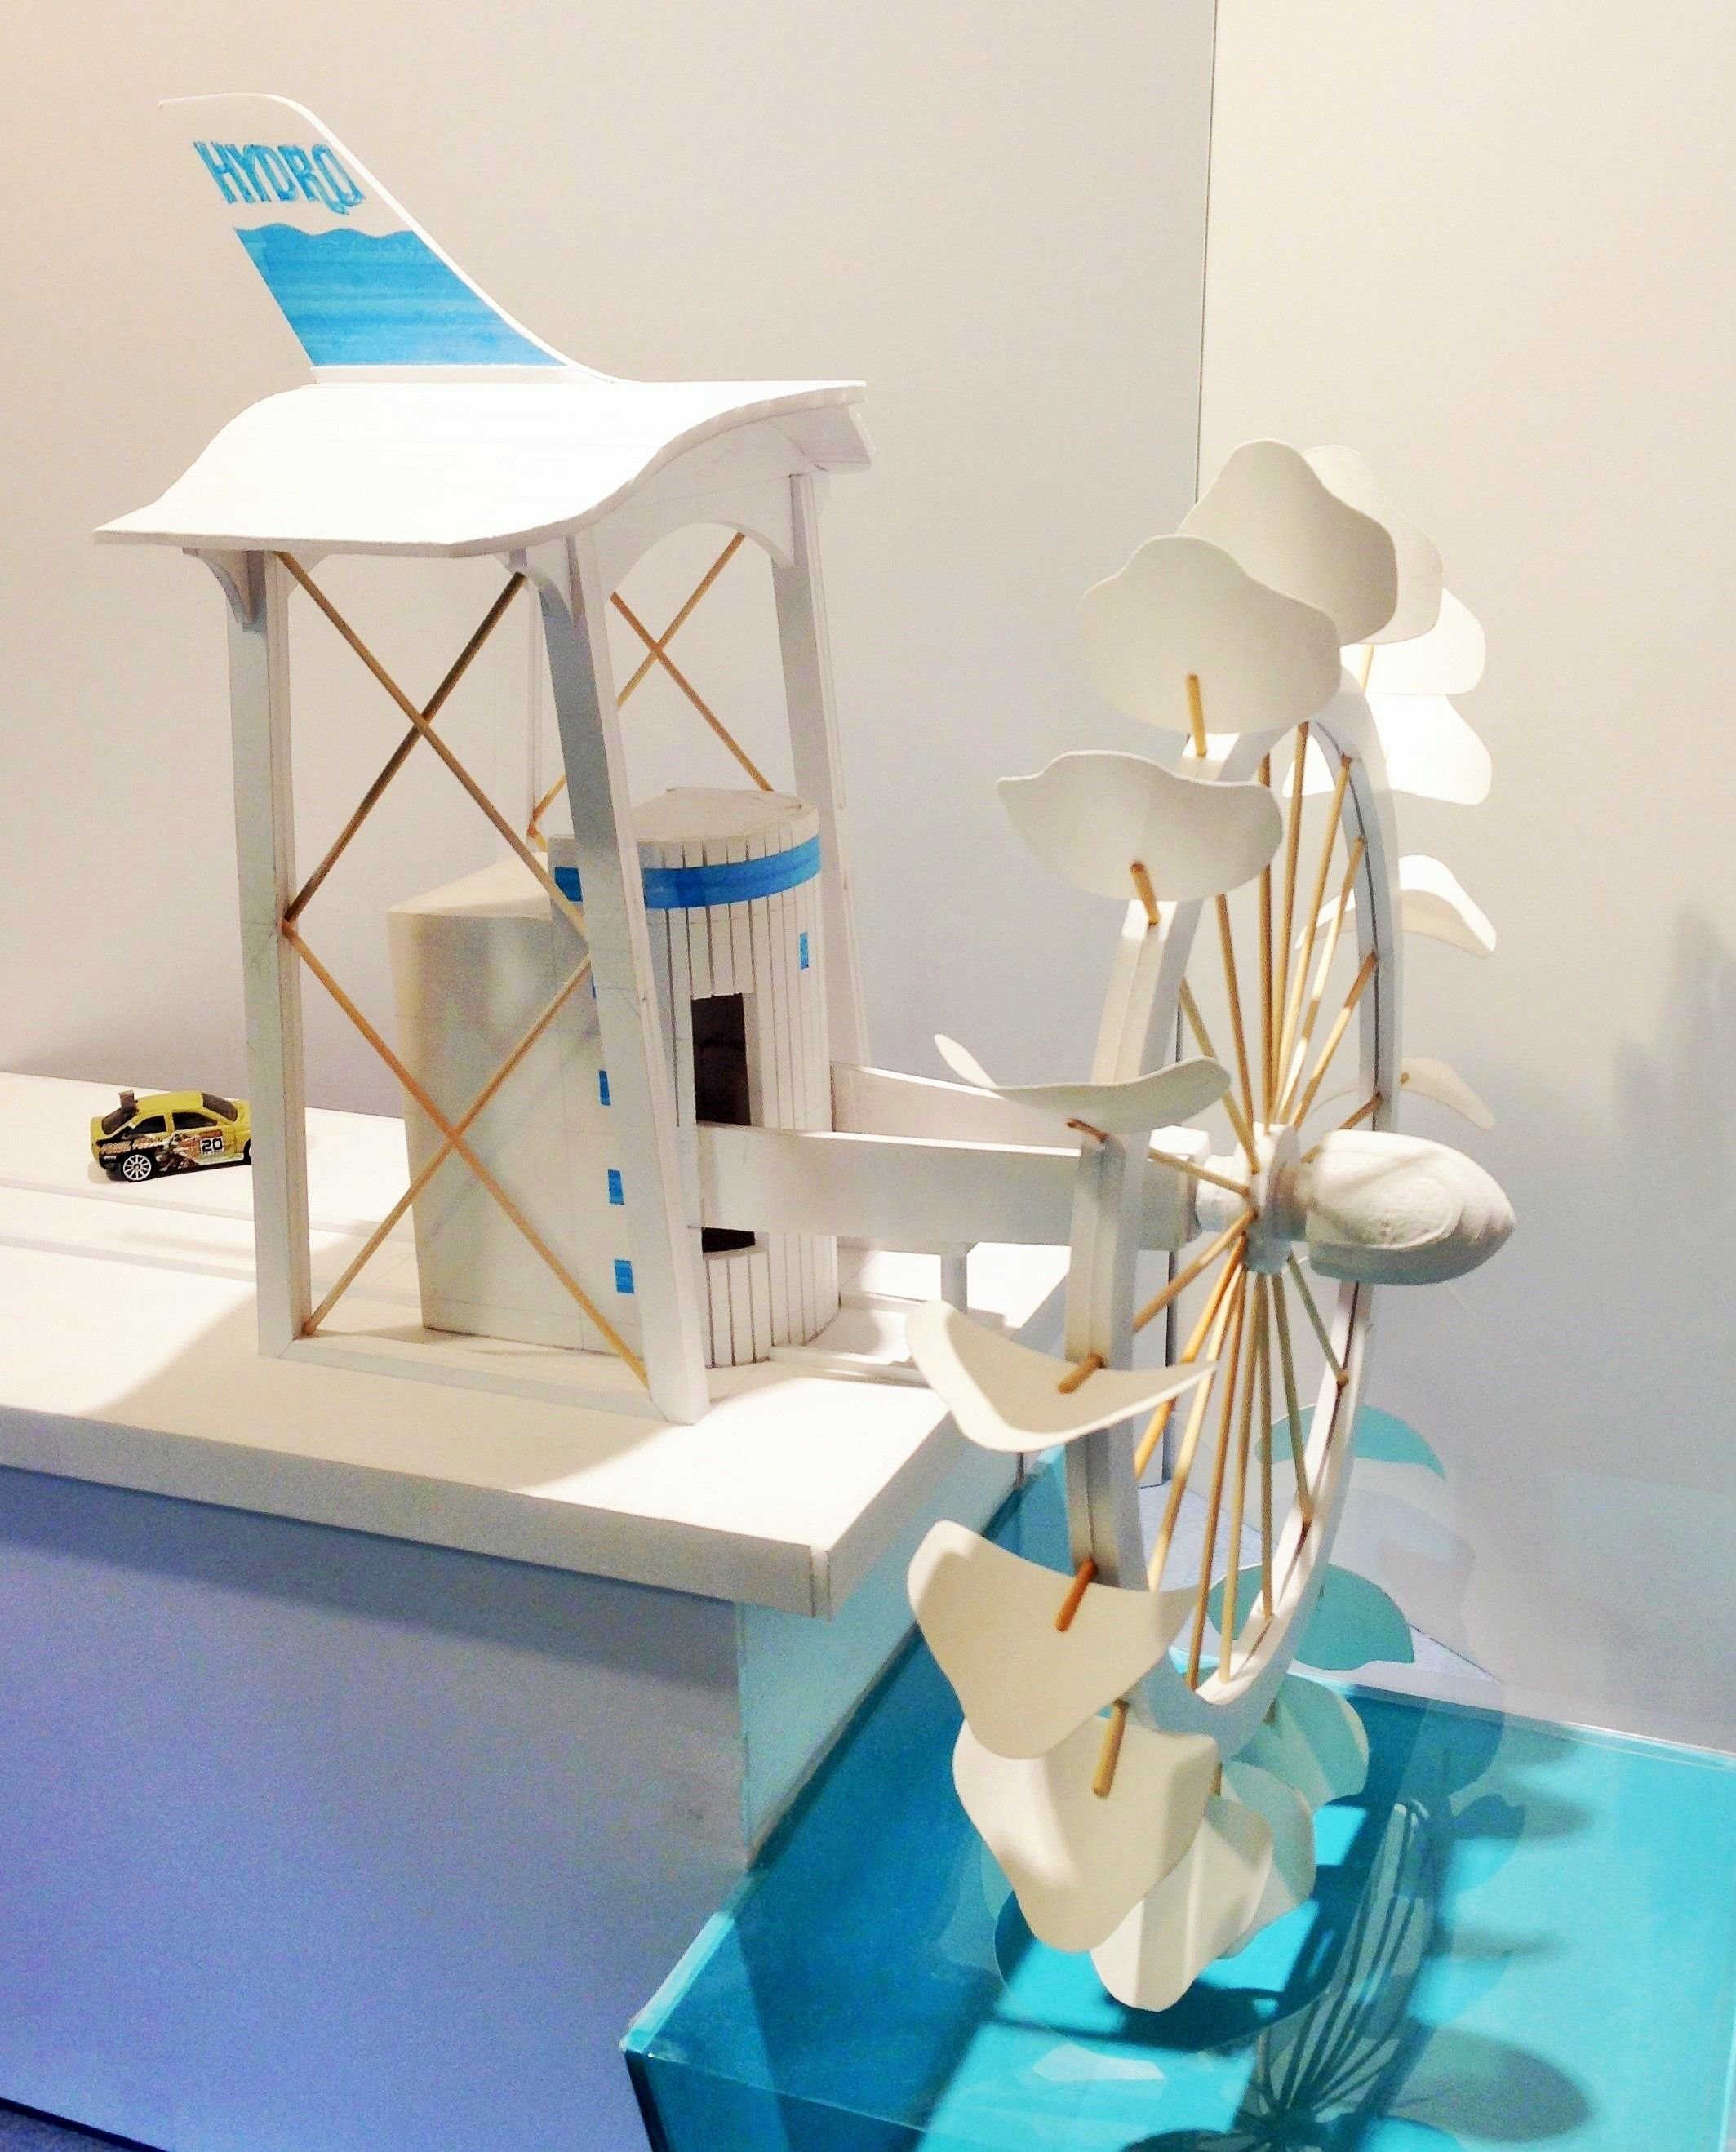 Concept Model of our latest HK Energy Capture Machine